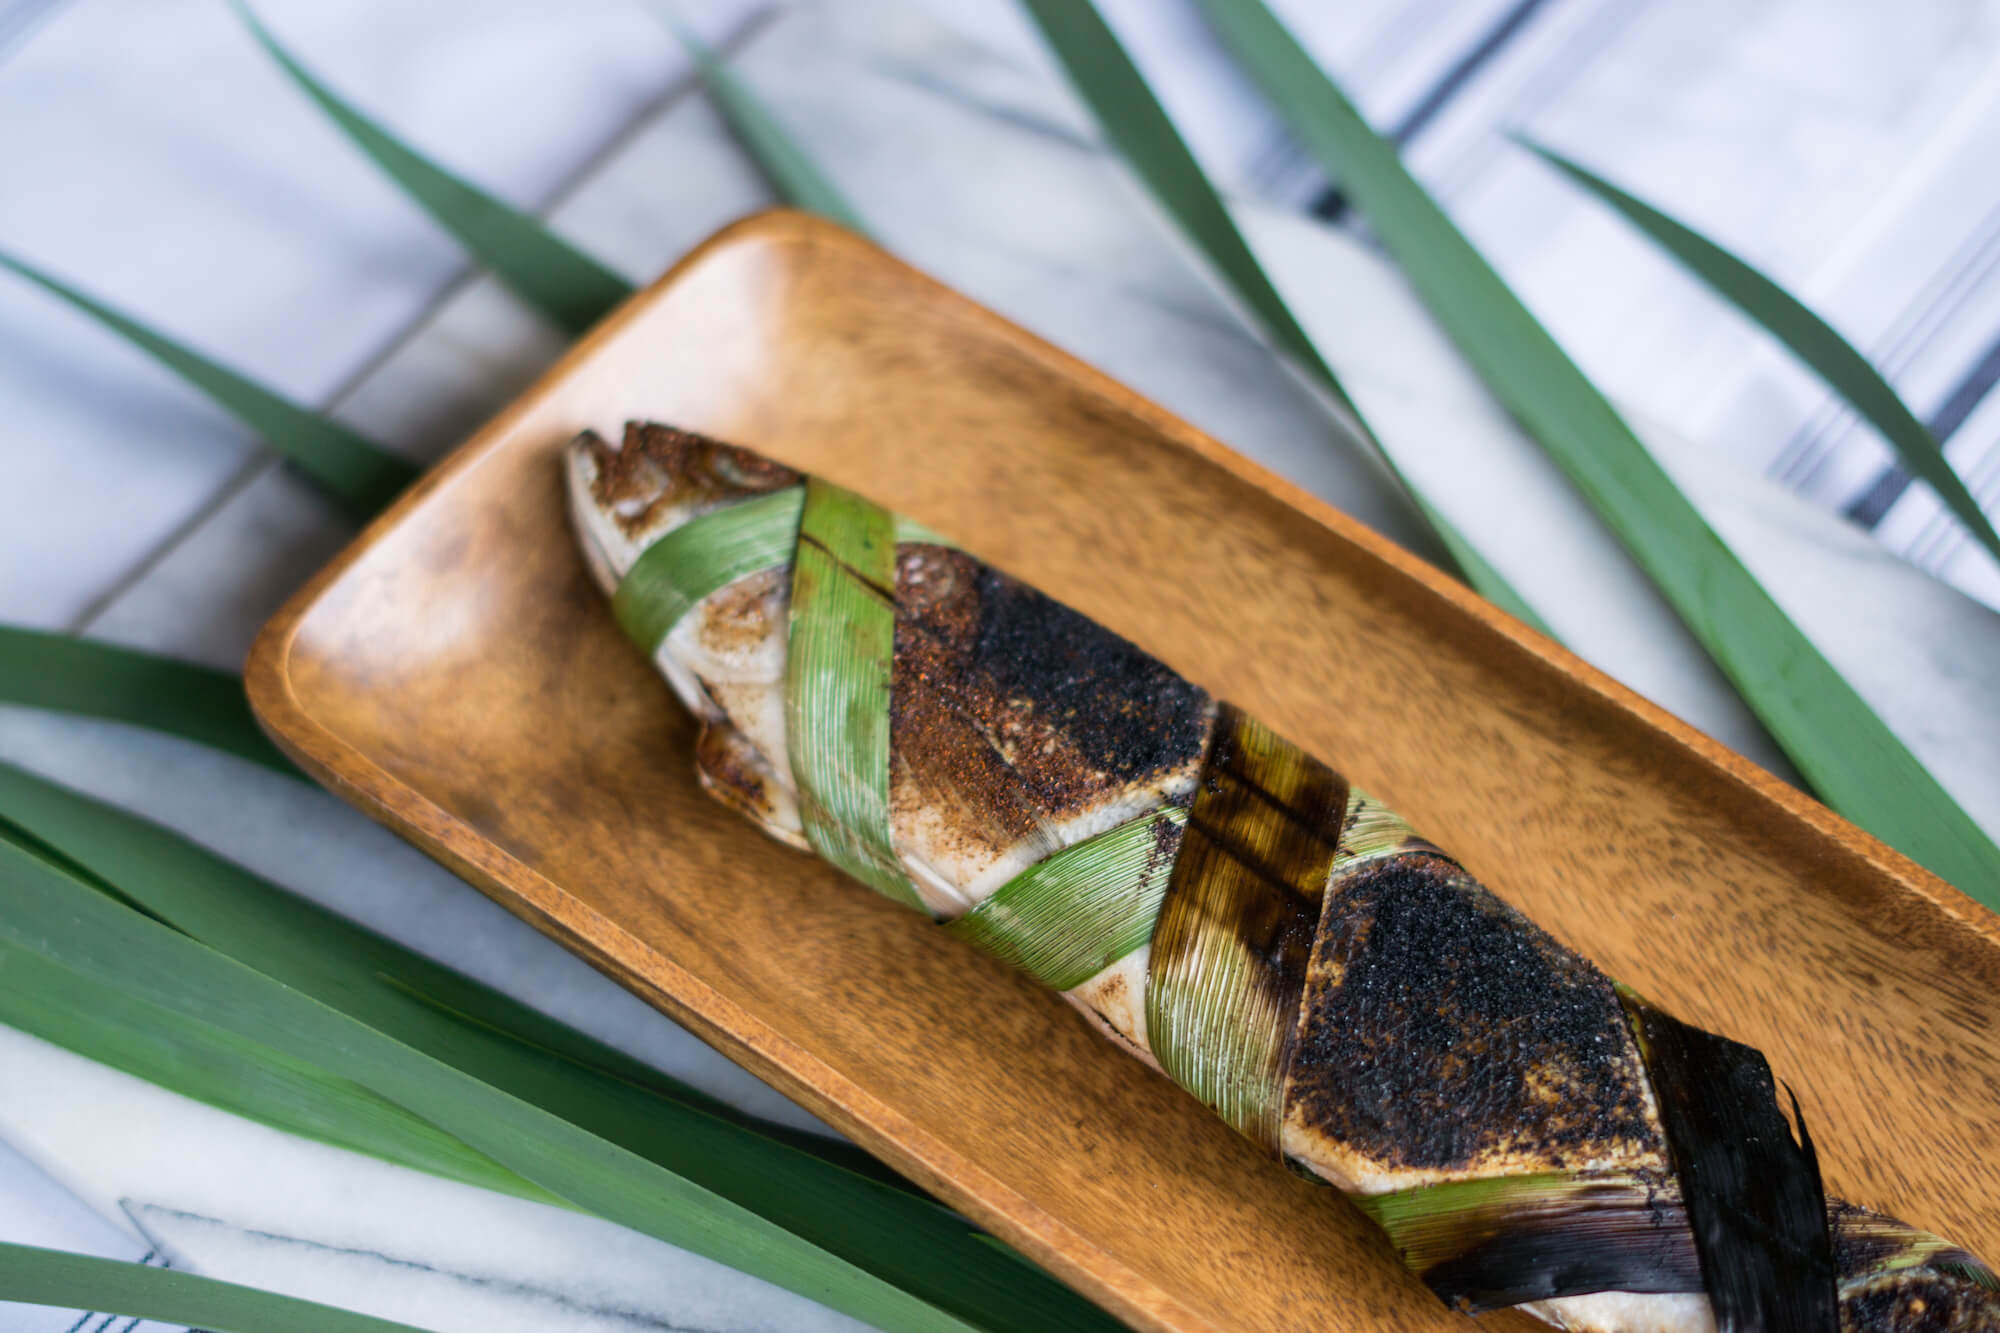 Recipe for simple grilled fish using tropical leaves and fish from the Amazon River